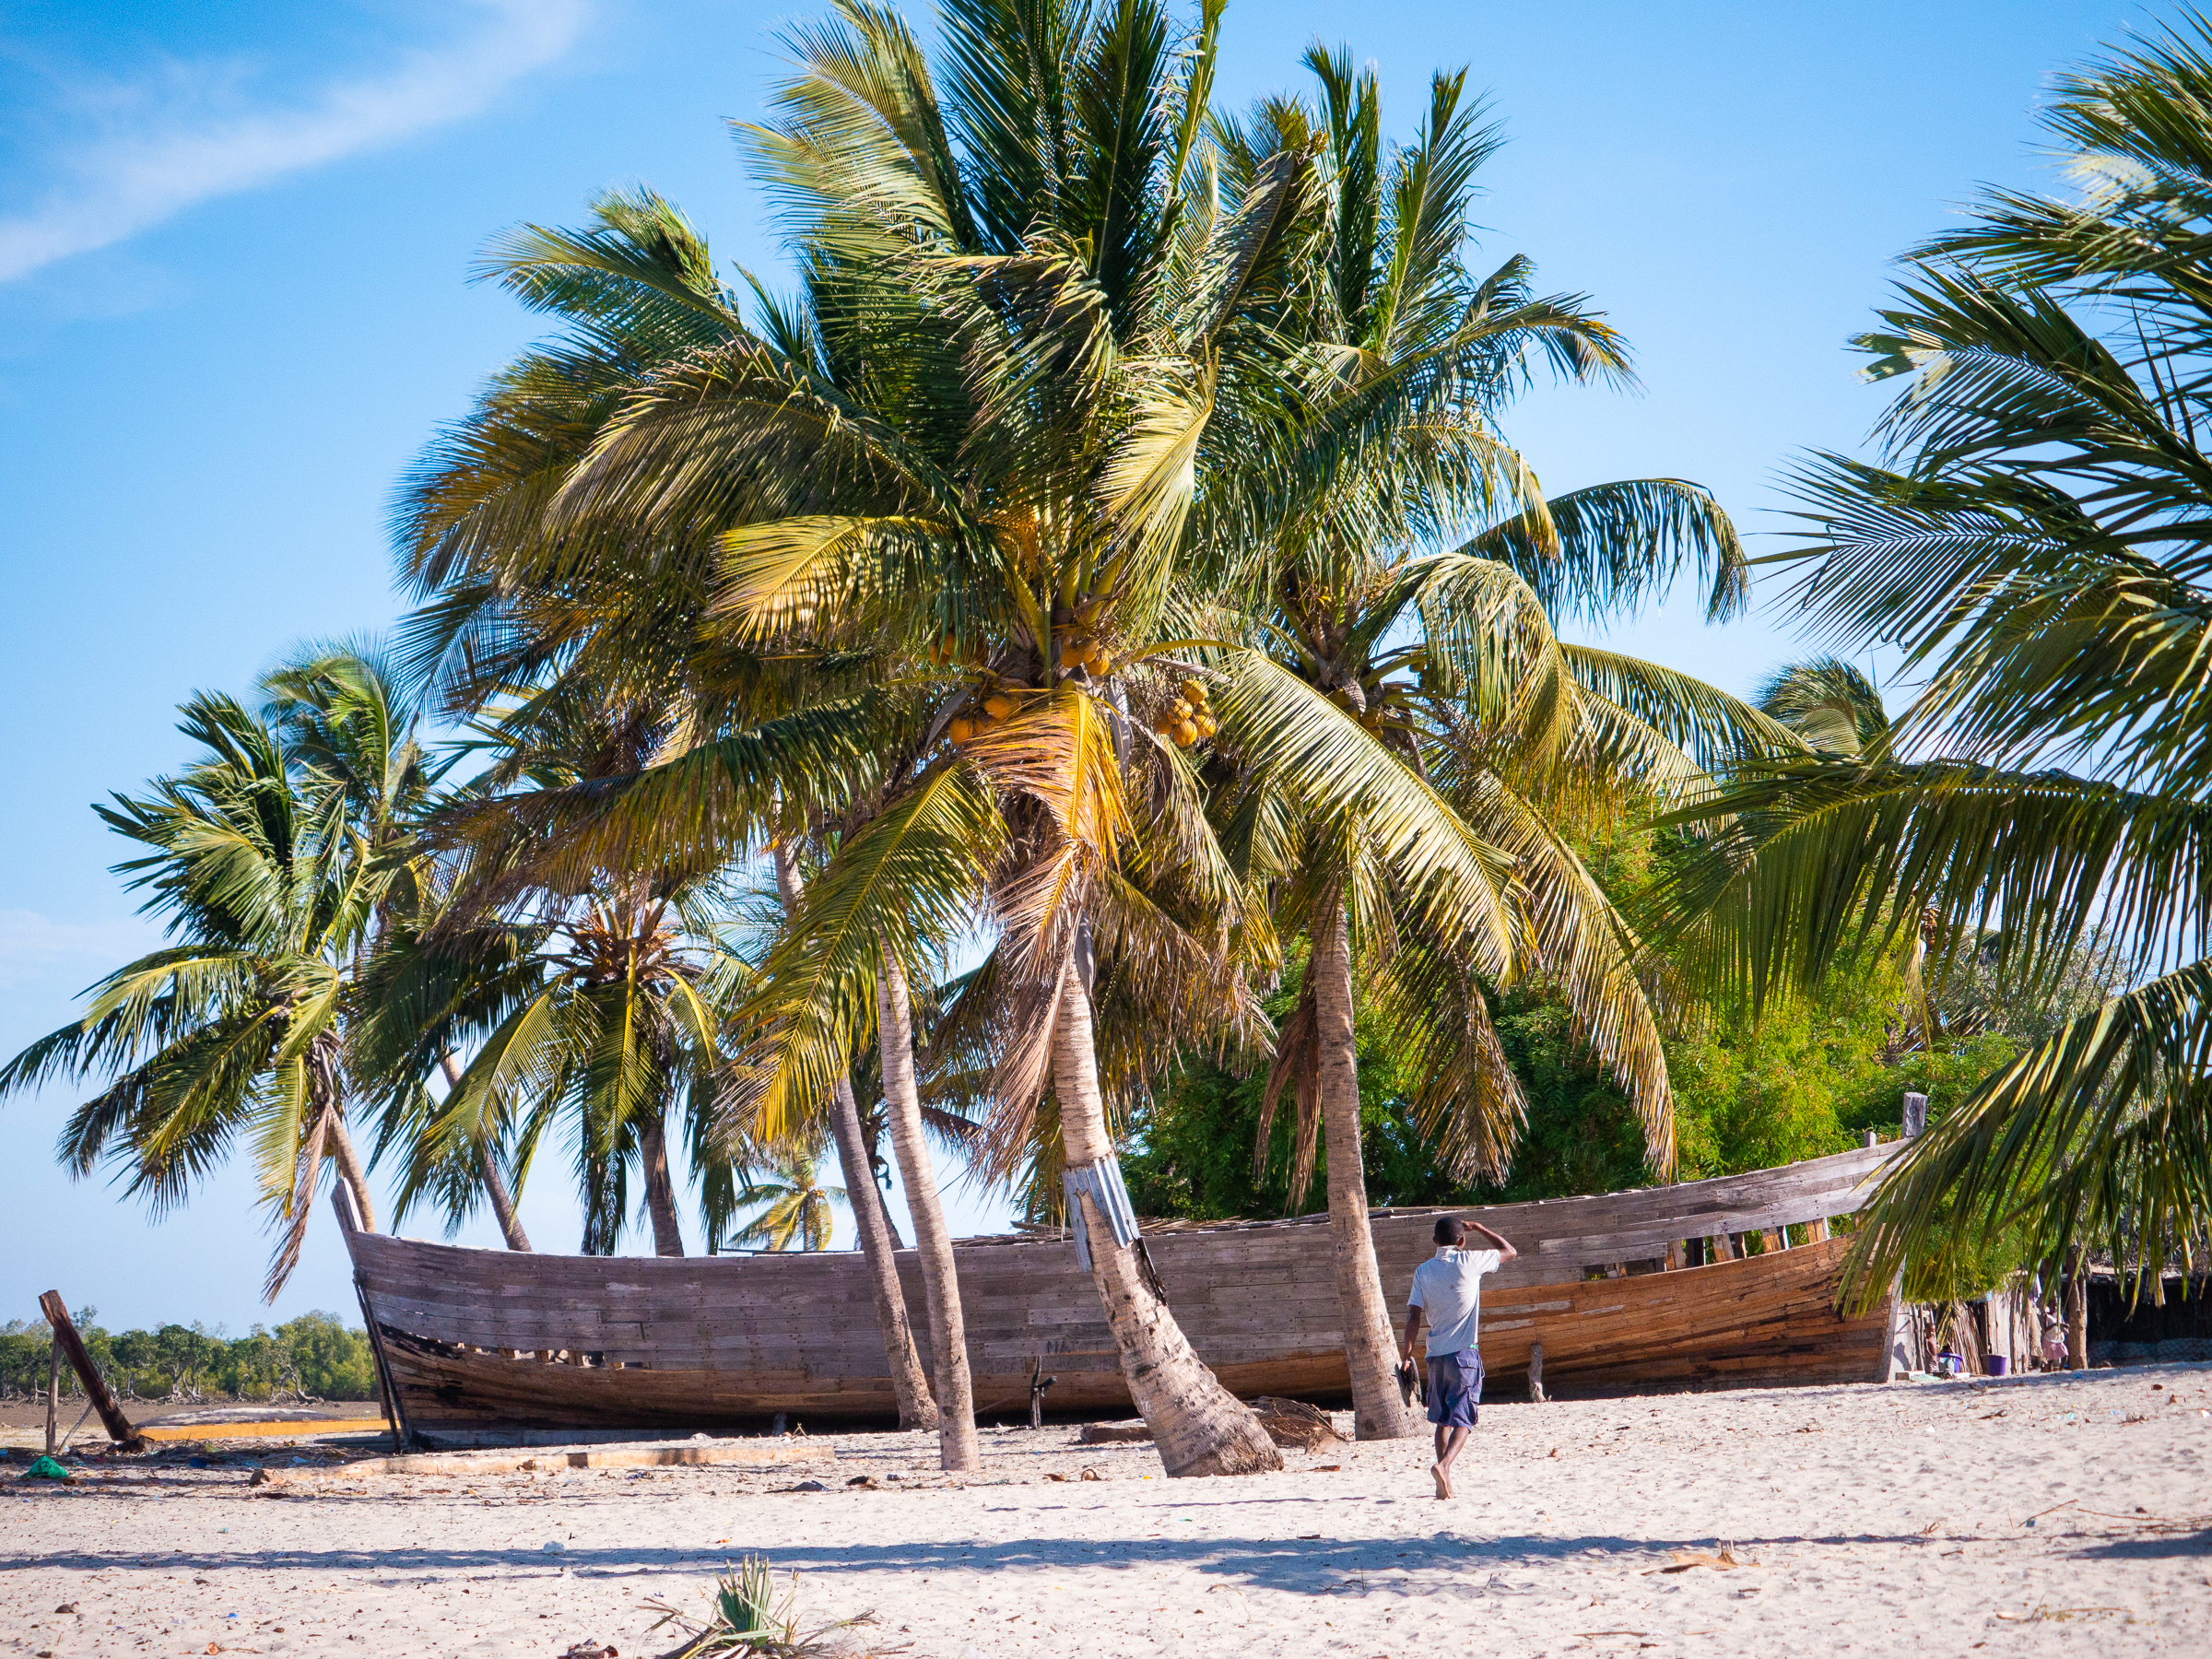 Palm trees on beach in Betany, Morondava